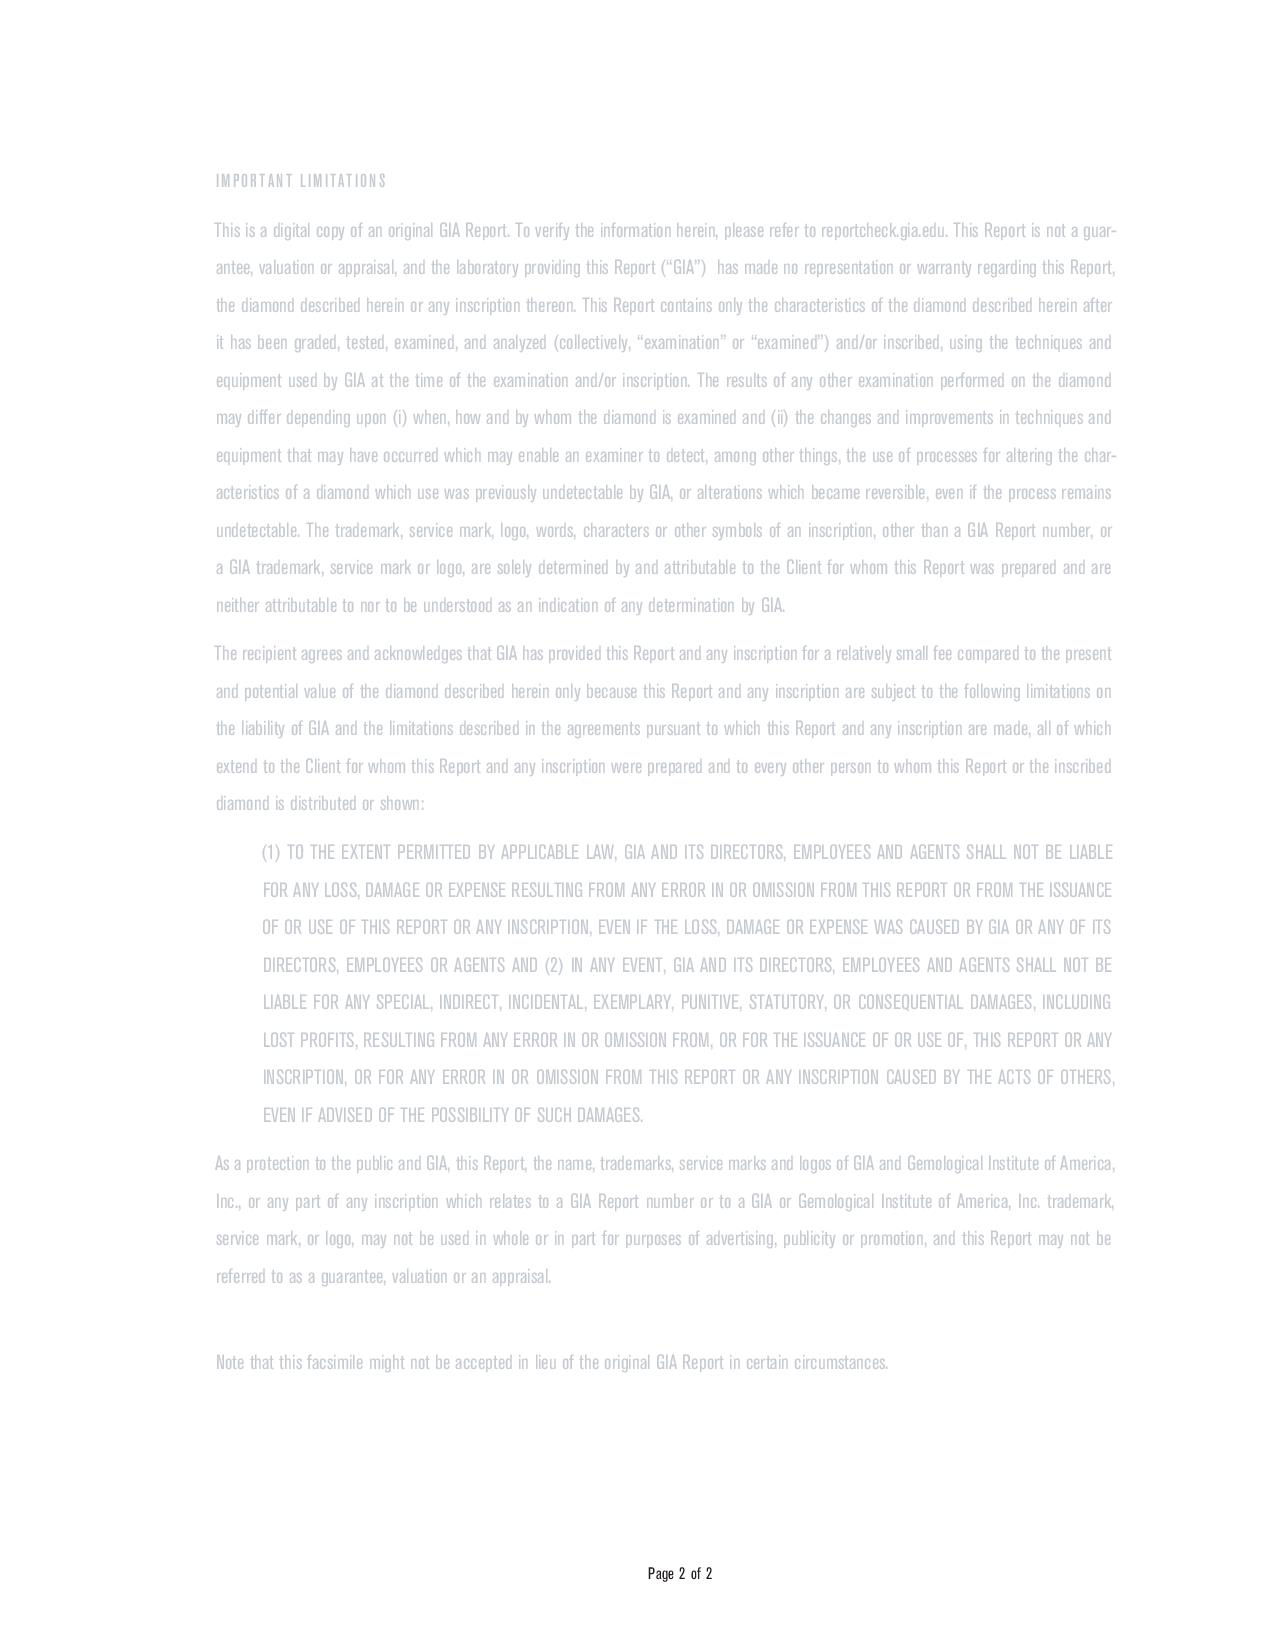 This is a 0.96 carat round shape, D color, SI2 clarity natural diamond accompanied by a GIA grading report.